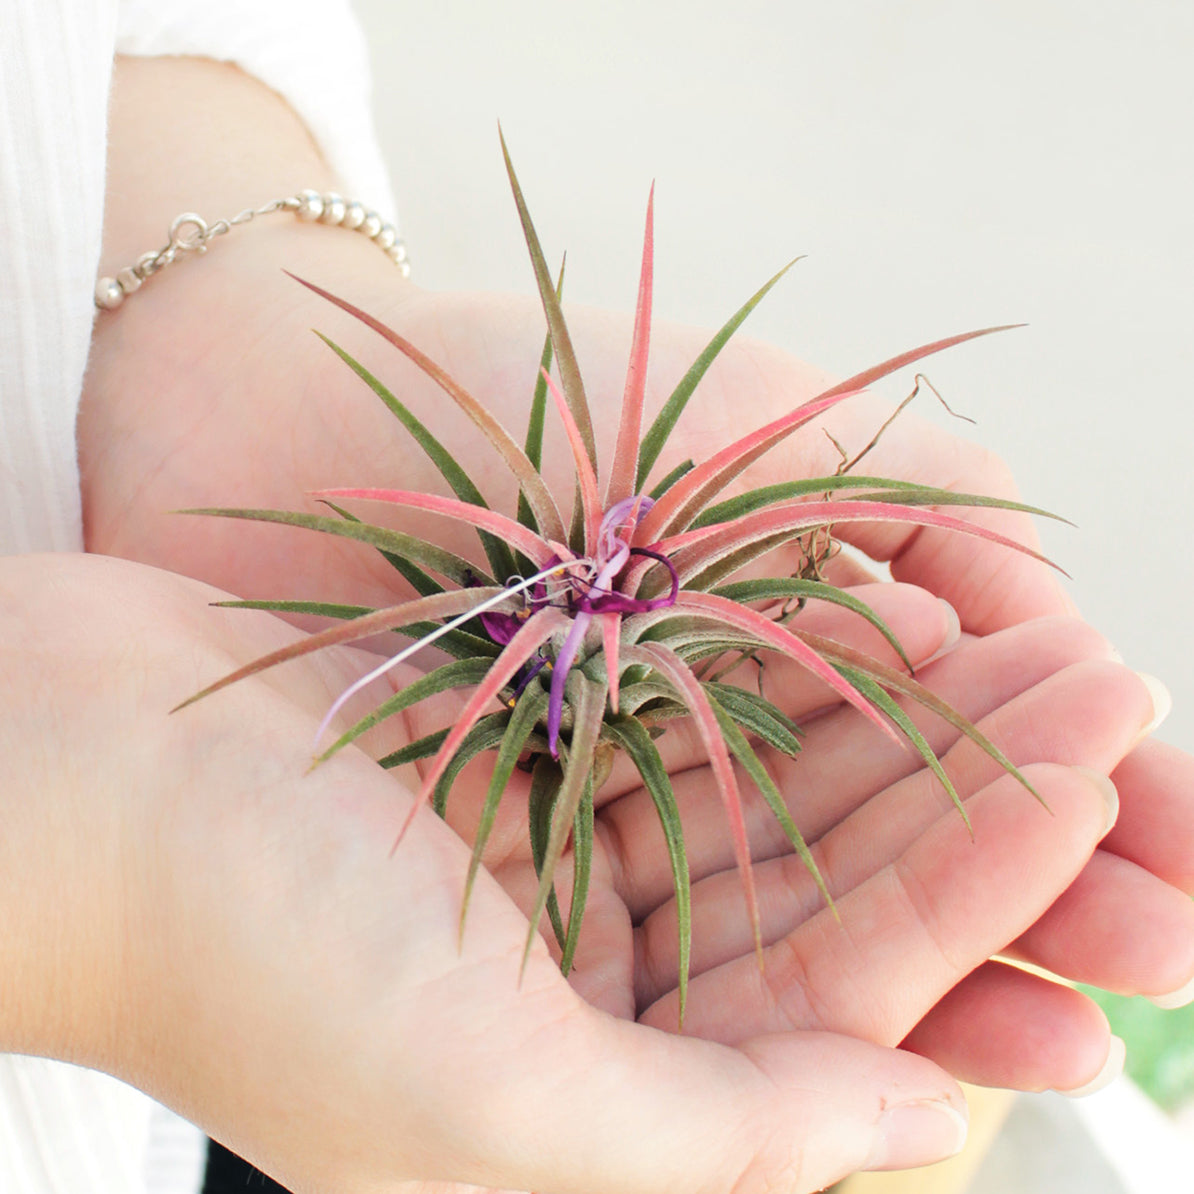 Air Plant Gift for sale, Succulents for Sale, Types of Succulents, Succulents Shop in California, Succulents and Cactus Plants, Cactus Box, Subscription Box with Care Instruction, Succulent Subscription Box